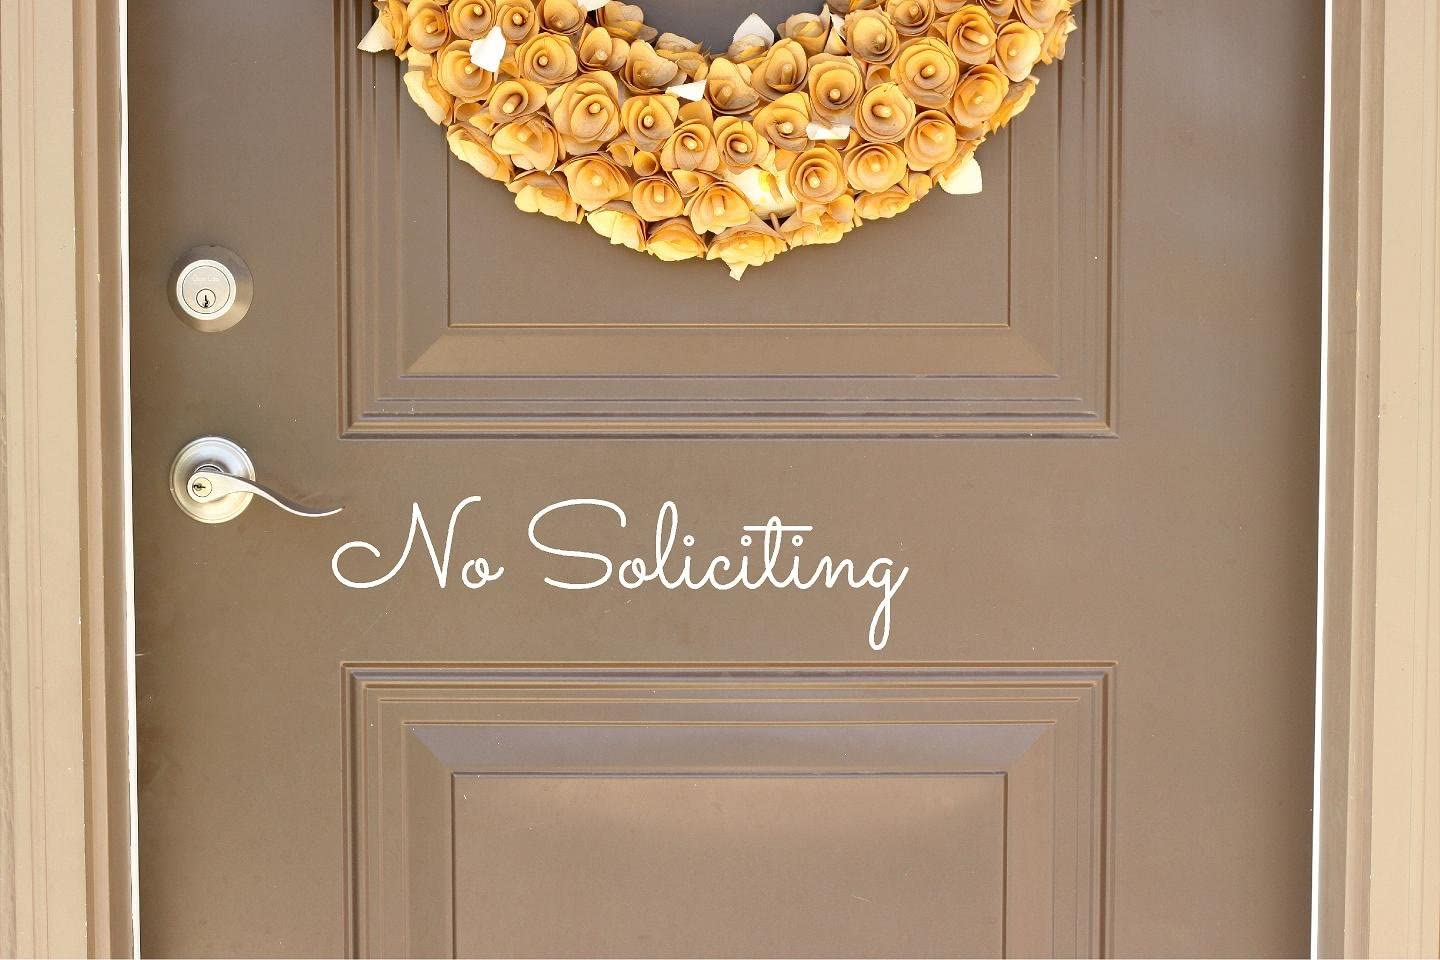 """No Soliciting - Vinyl Lettering Word Door or Wall Art Home Decal - 15"""" W x 4"""" H (White, Matte)"""